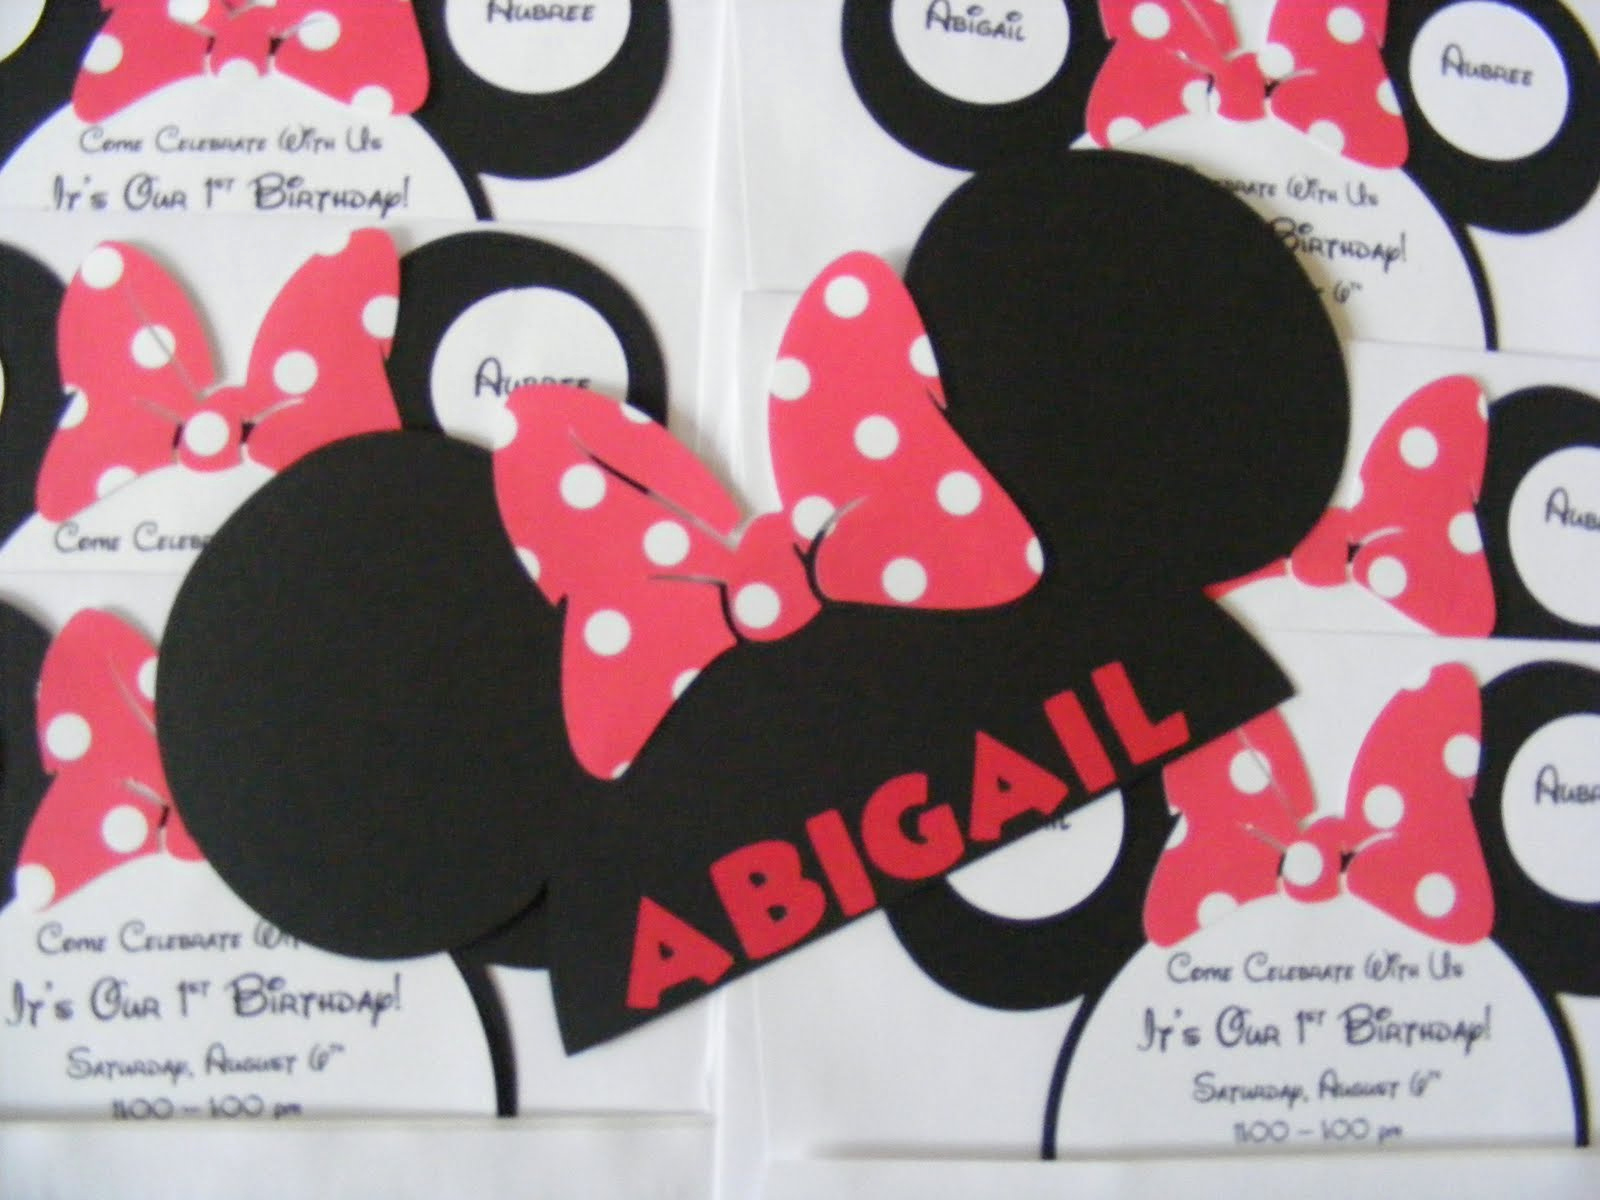 Minnie Mouse Invitation Ideas Awesome Whimsical Creations by Ann Minnie Mouse Party Ideas